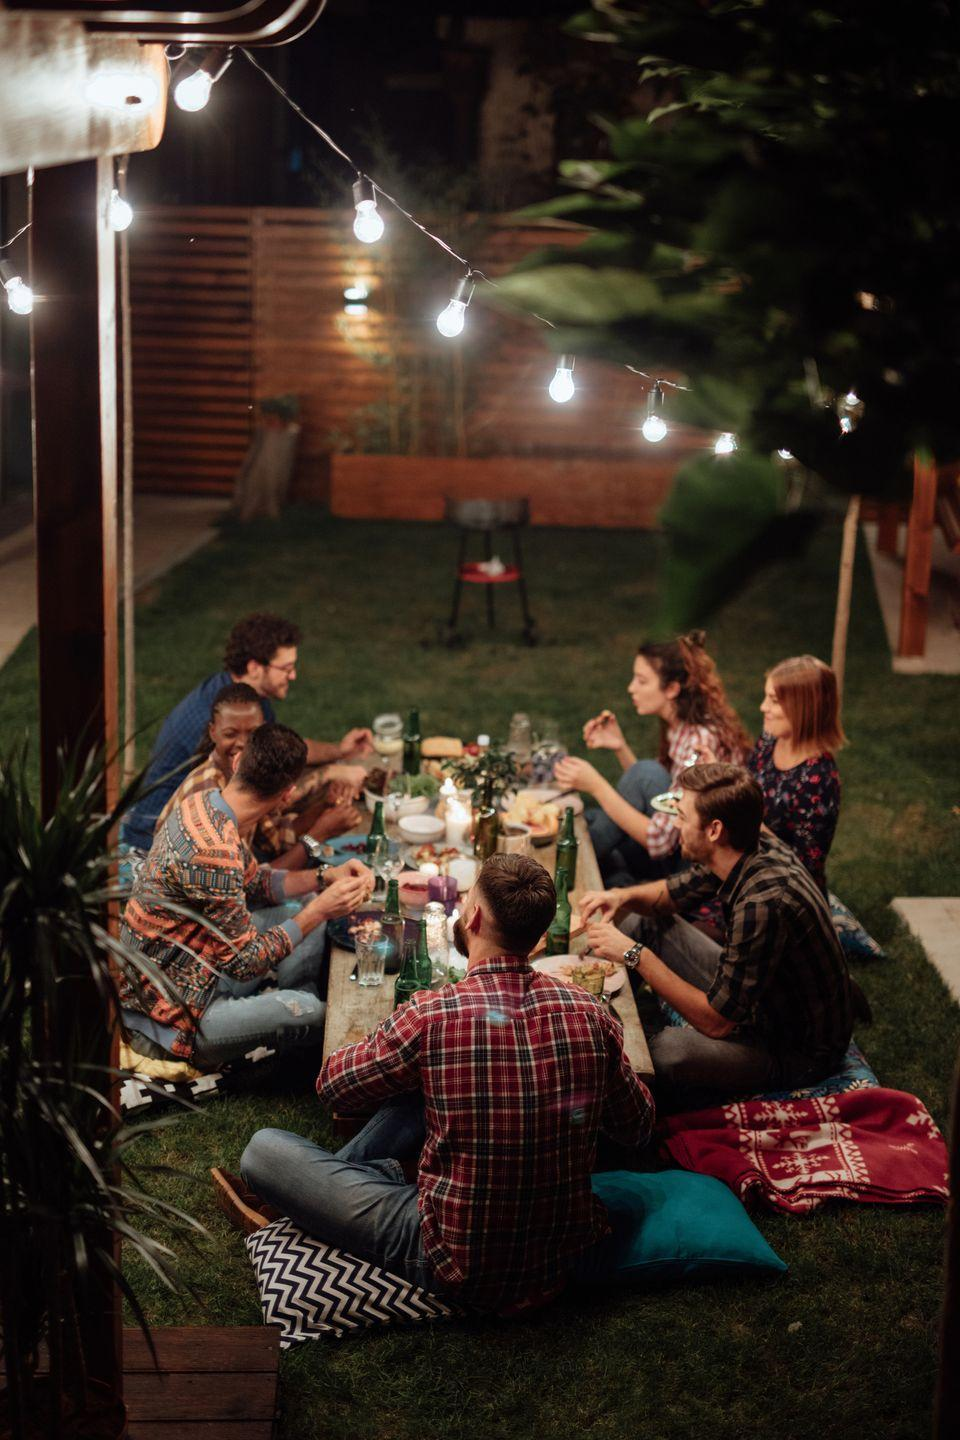 <p>Entertaining friends and family over a table overflowing with delicious food is what the season is all about. Make the best of fall with a big roast (and for the vegans, try a meat-substitute roast or load 'em up with side dishes).</p>